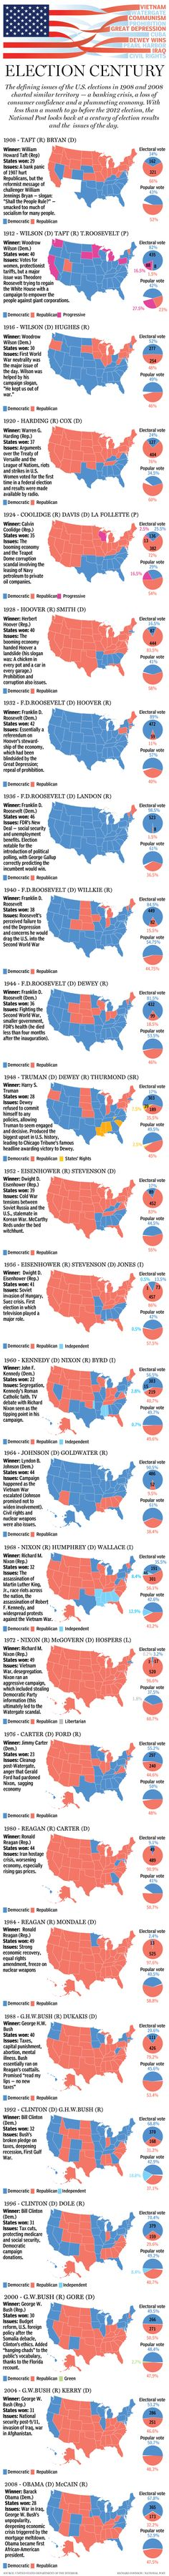 100 Years of US Election